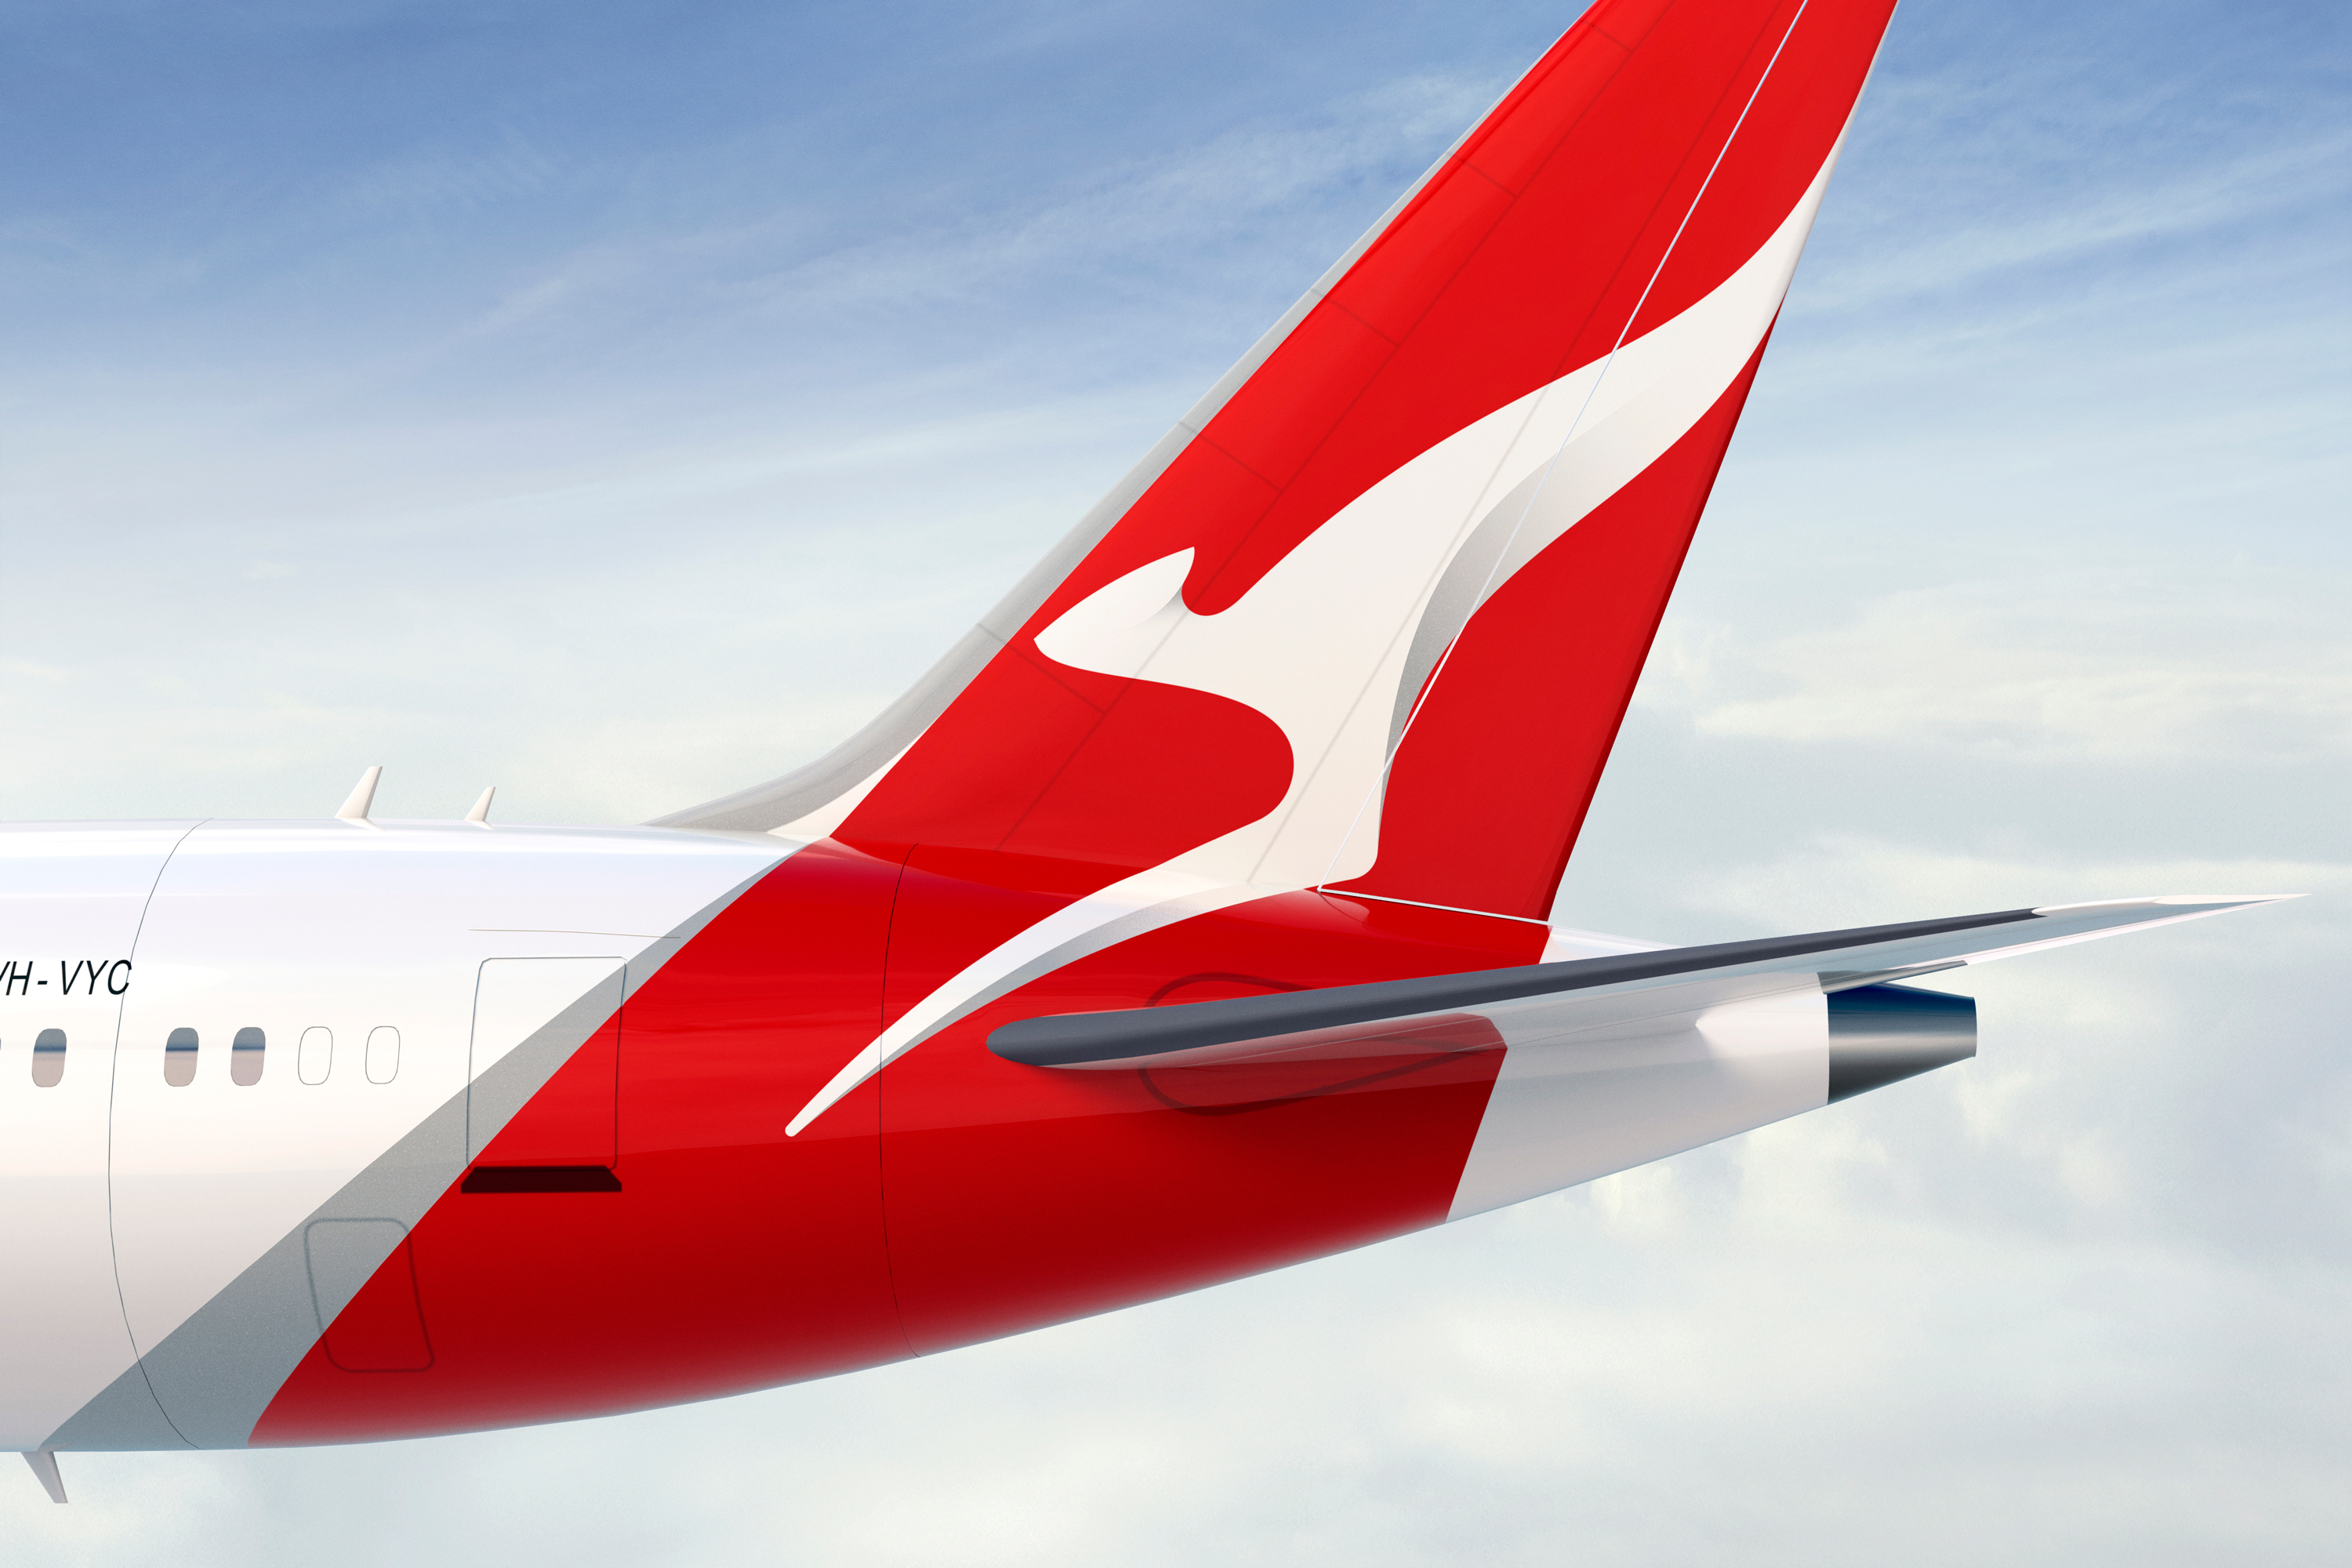 Qantas group houston group we also sought inspiration from the retro flying roos capturing the movement of the wings in a modernised way theres a sense of energy and dimension now stopboris Images